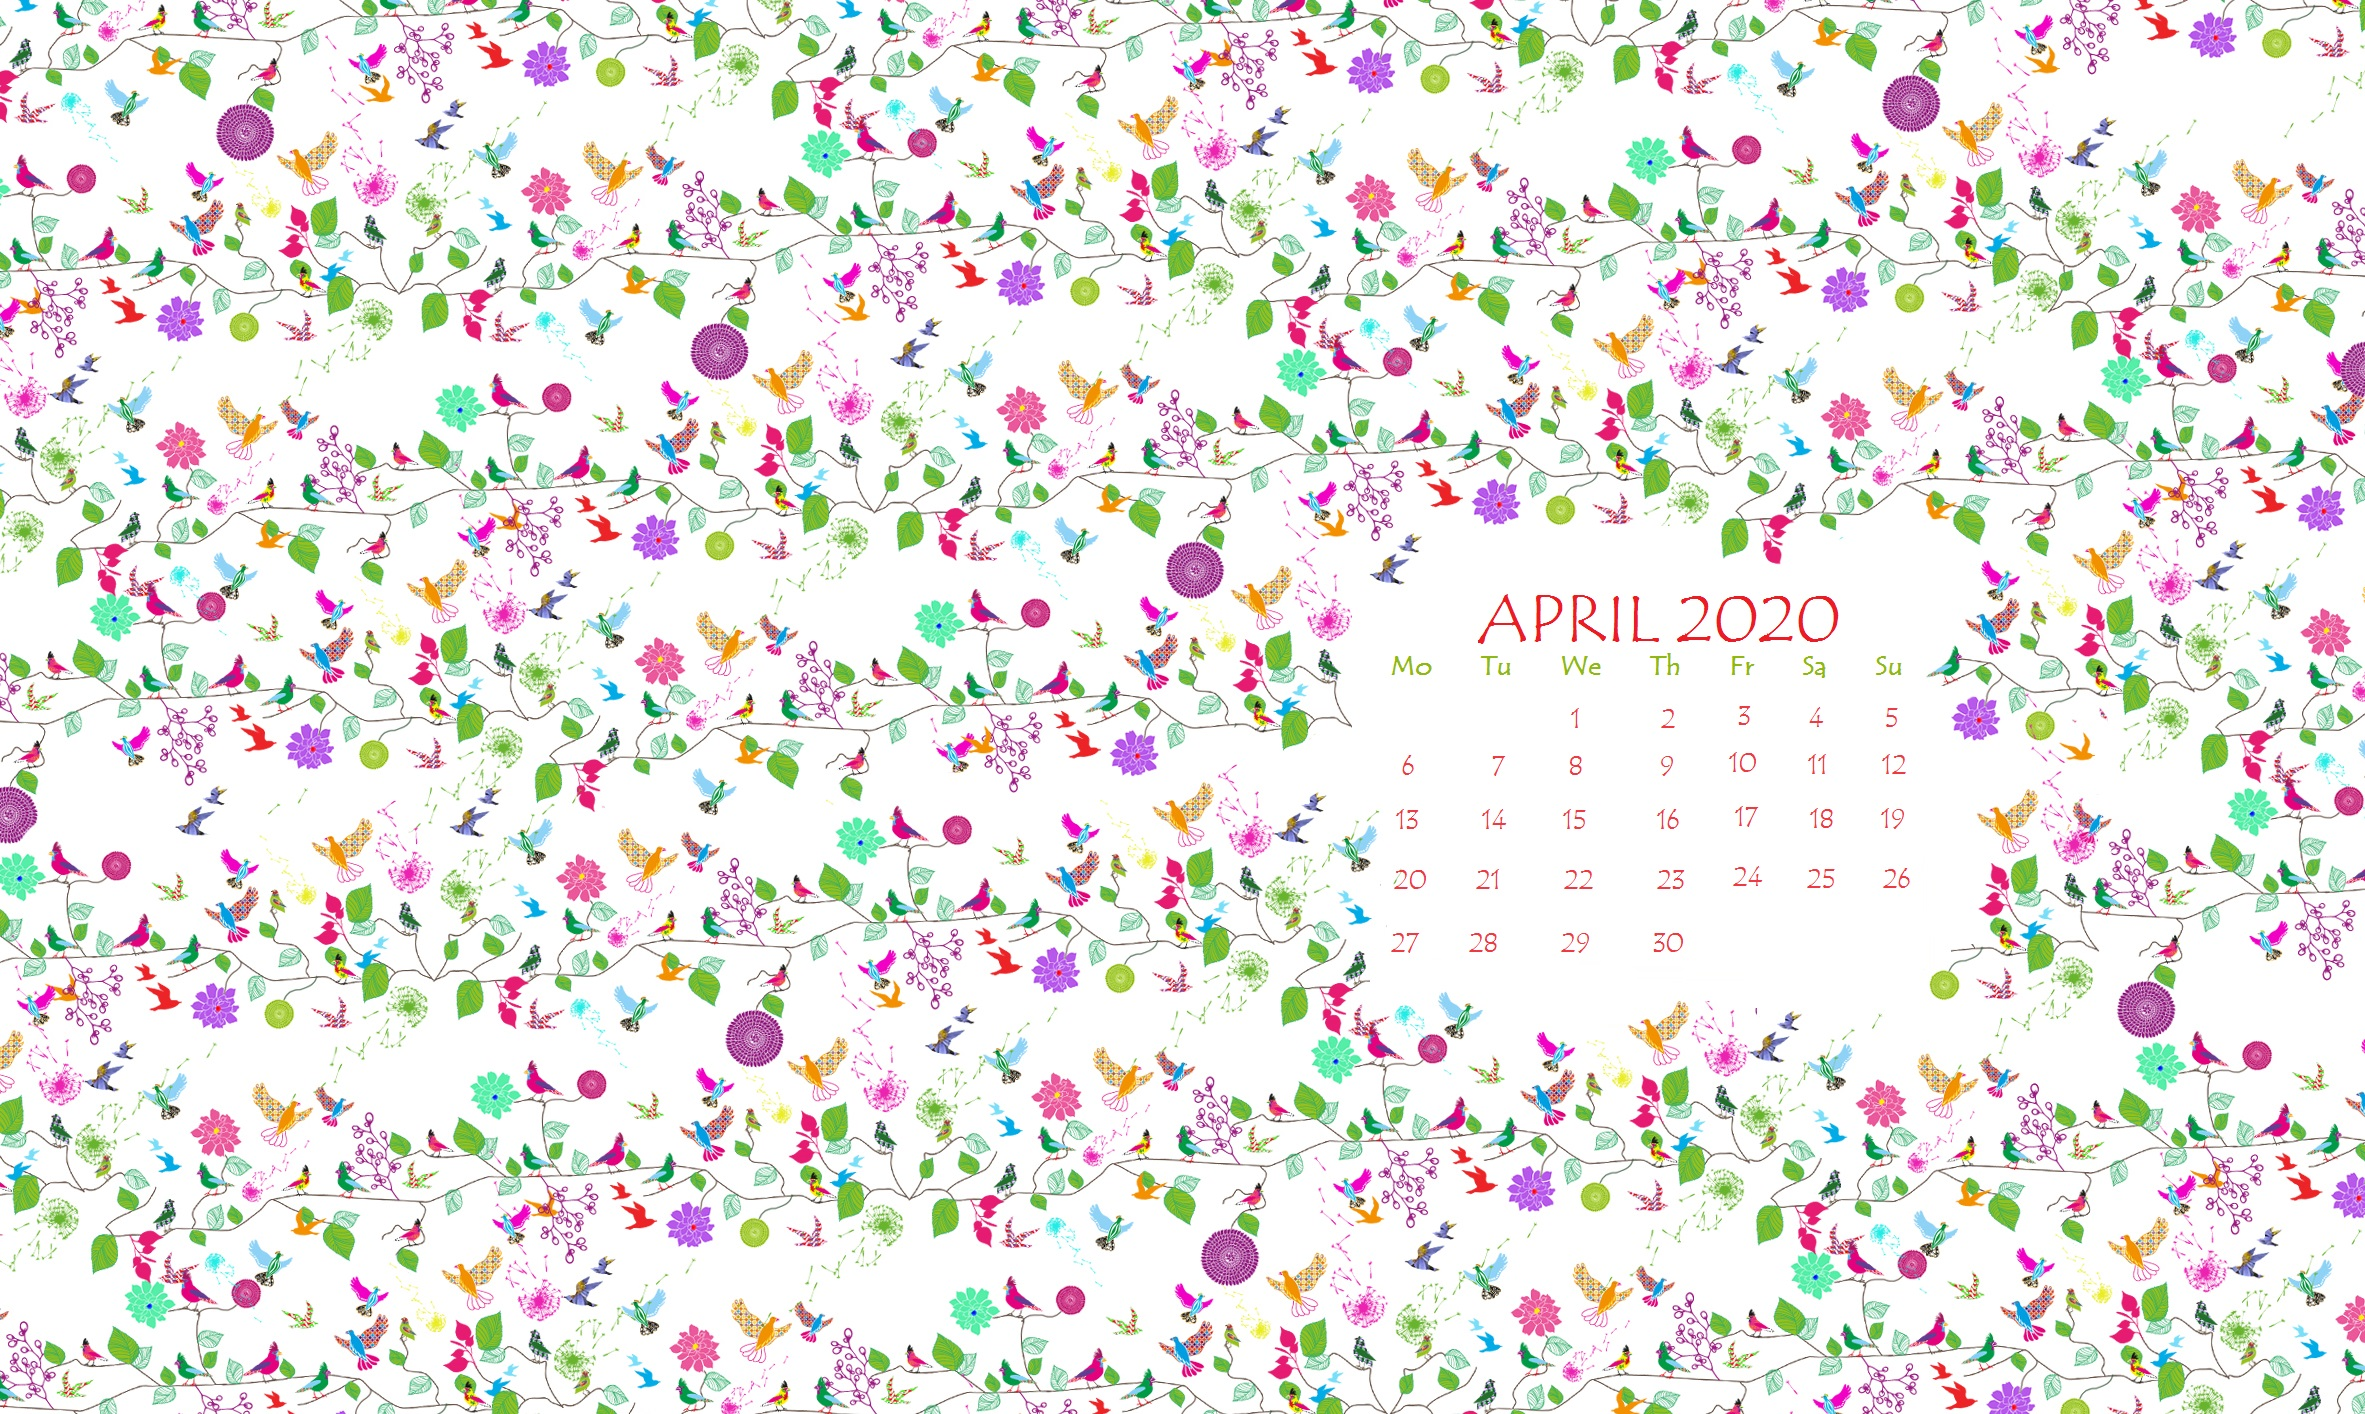 April 2020 Wallpaper Calendar Calendar 2020 2365x1414